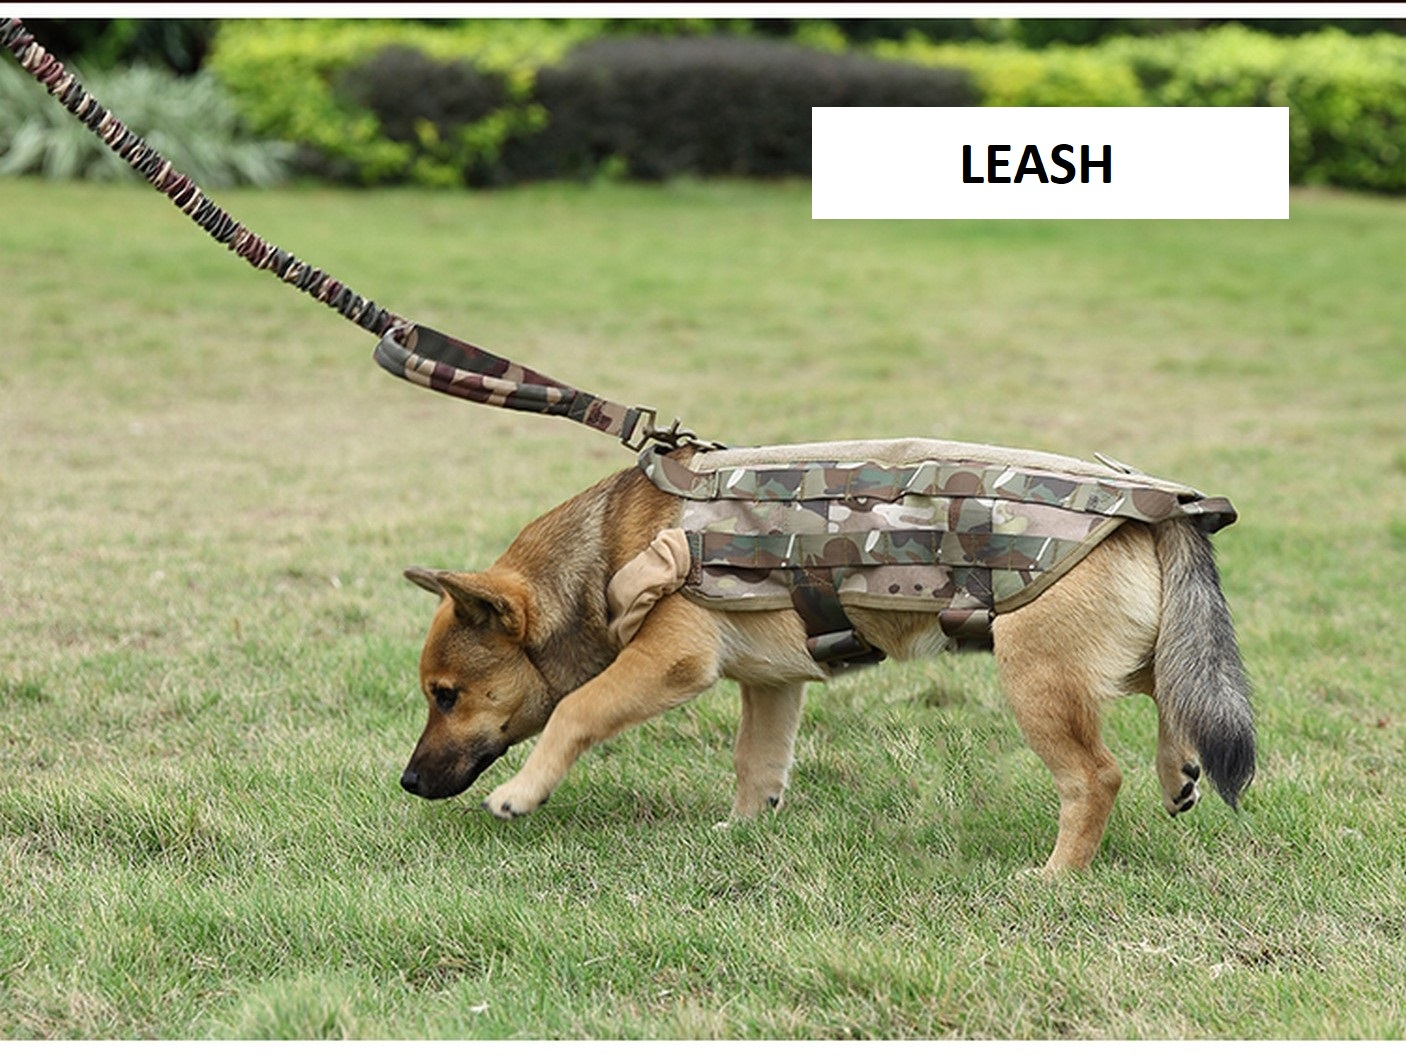 Tactical-Scorpion-Gear-Dog-Leash-Lead-Canine-K9-Military-Training-Vest-Harness thumbnail 9